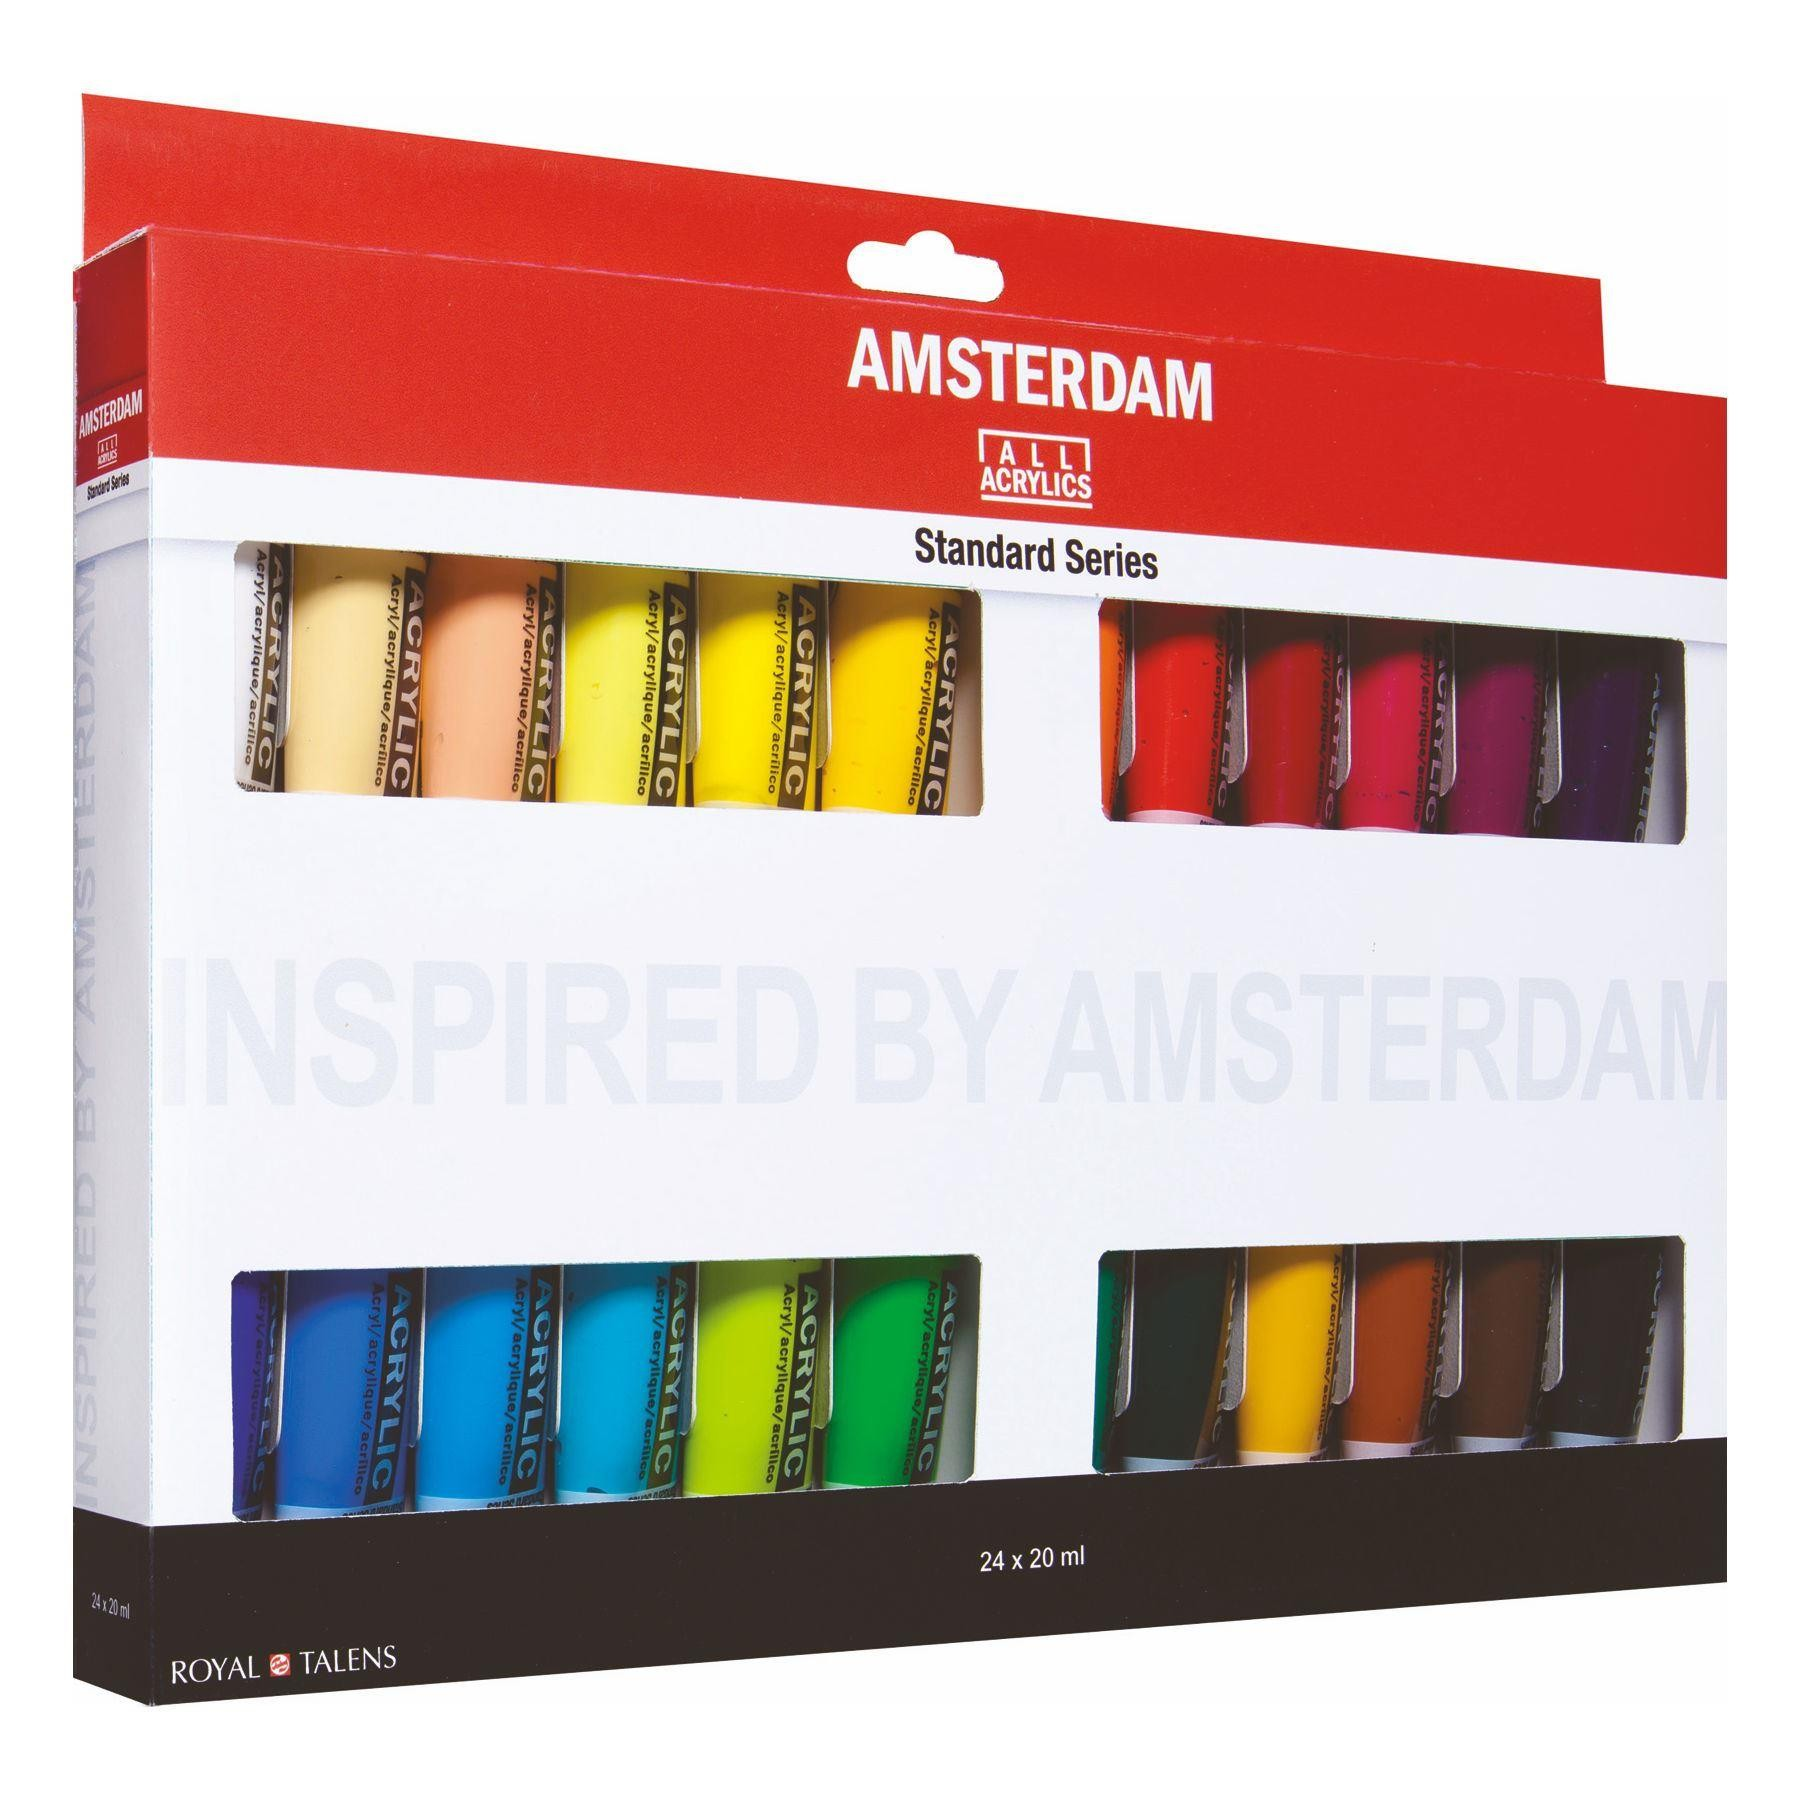 Royal Talens Amsterdam acrylic study set 24x20 ml.